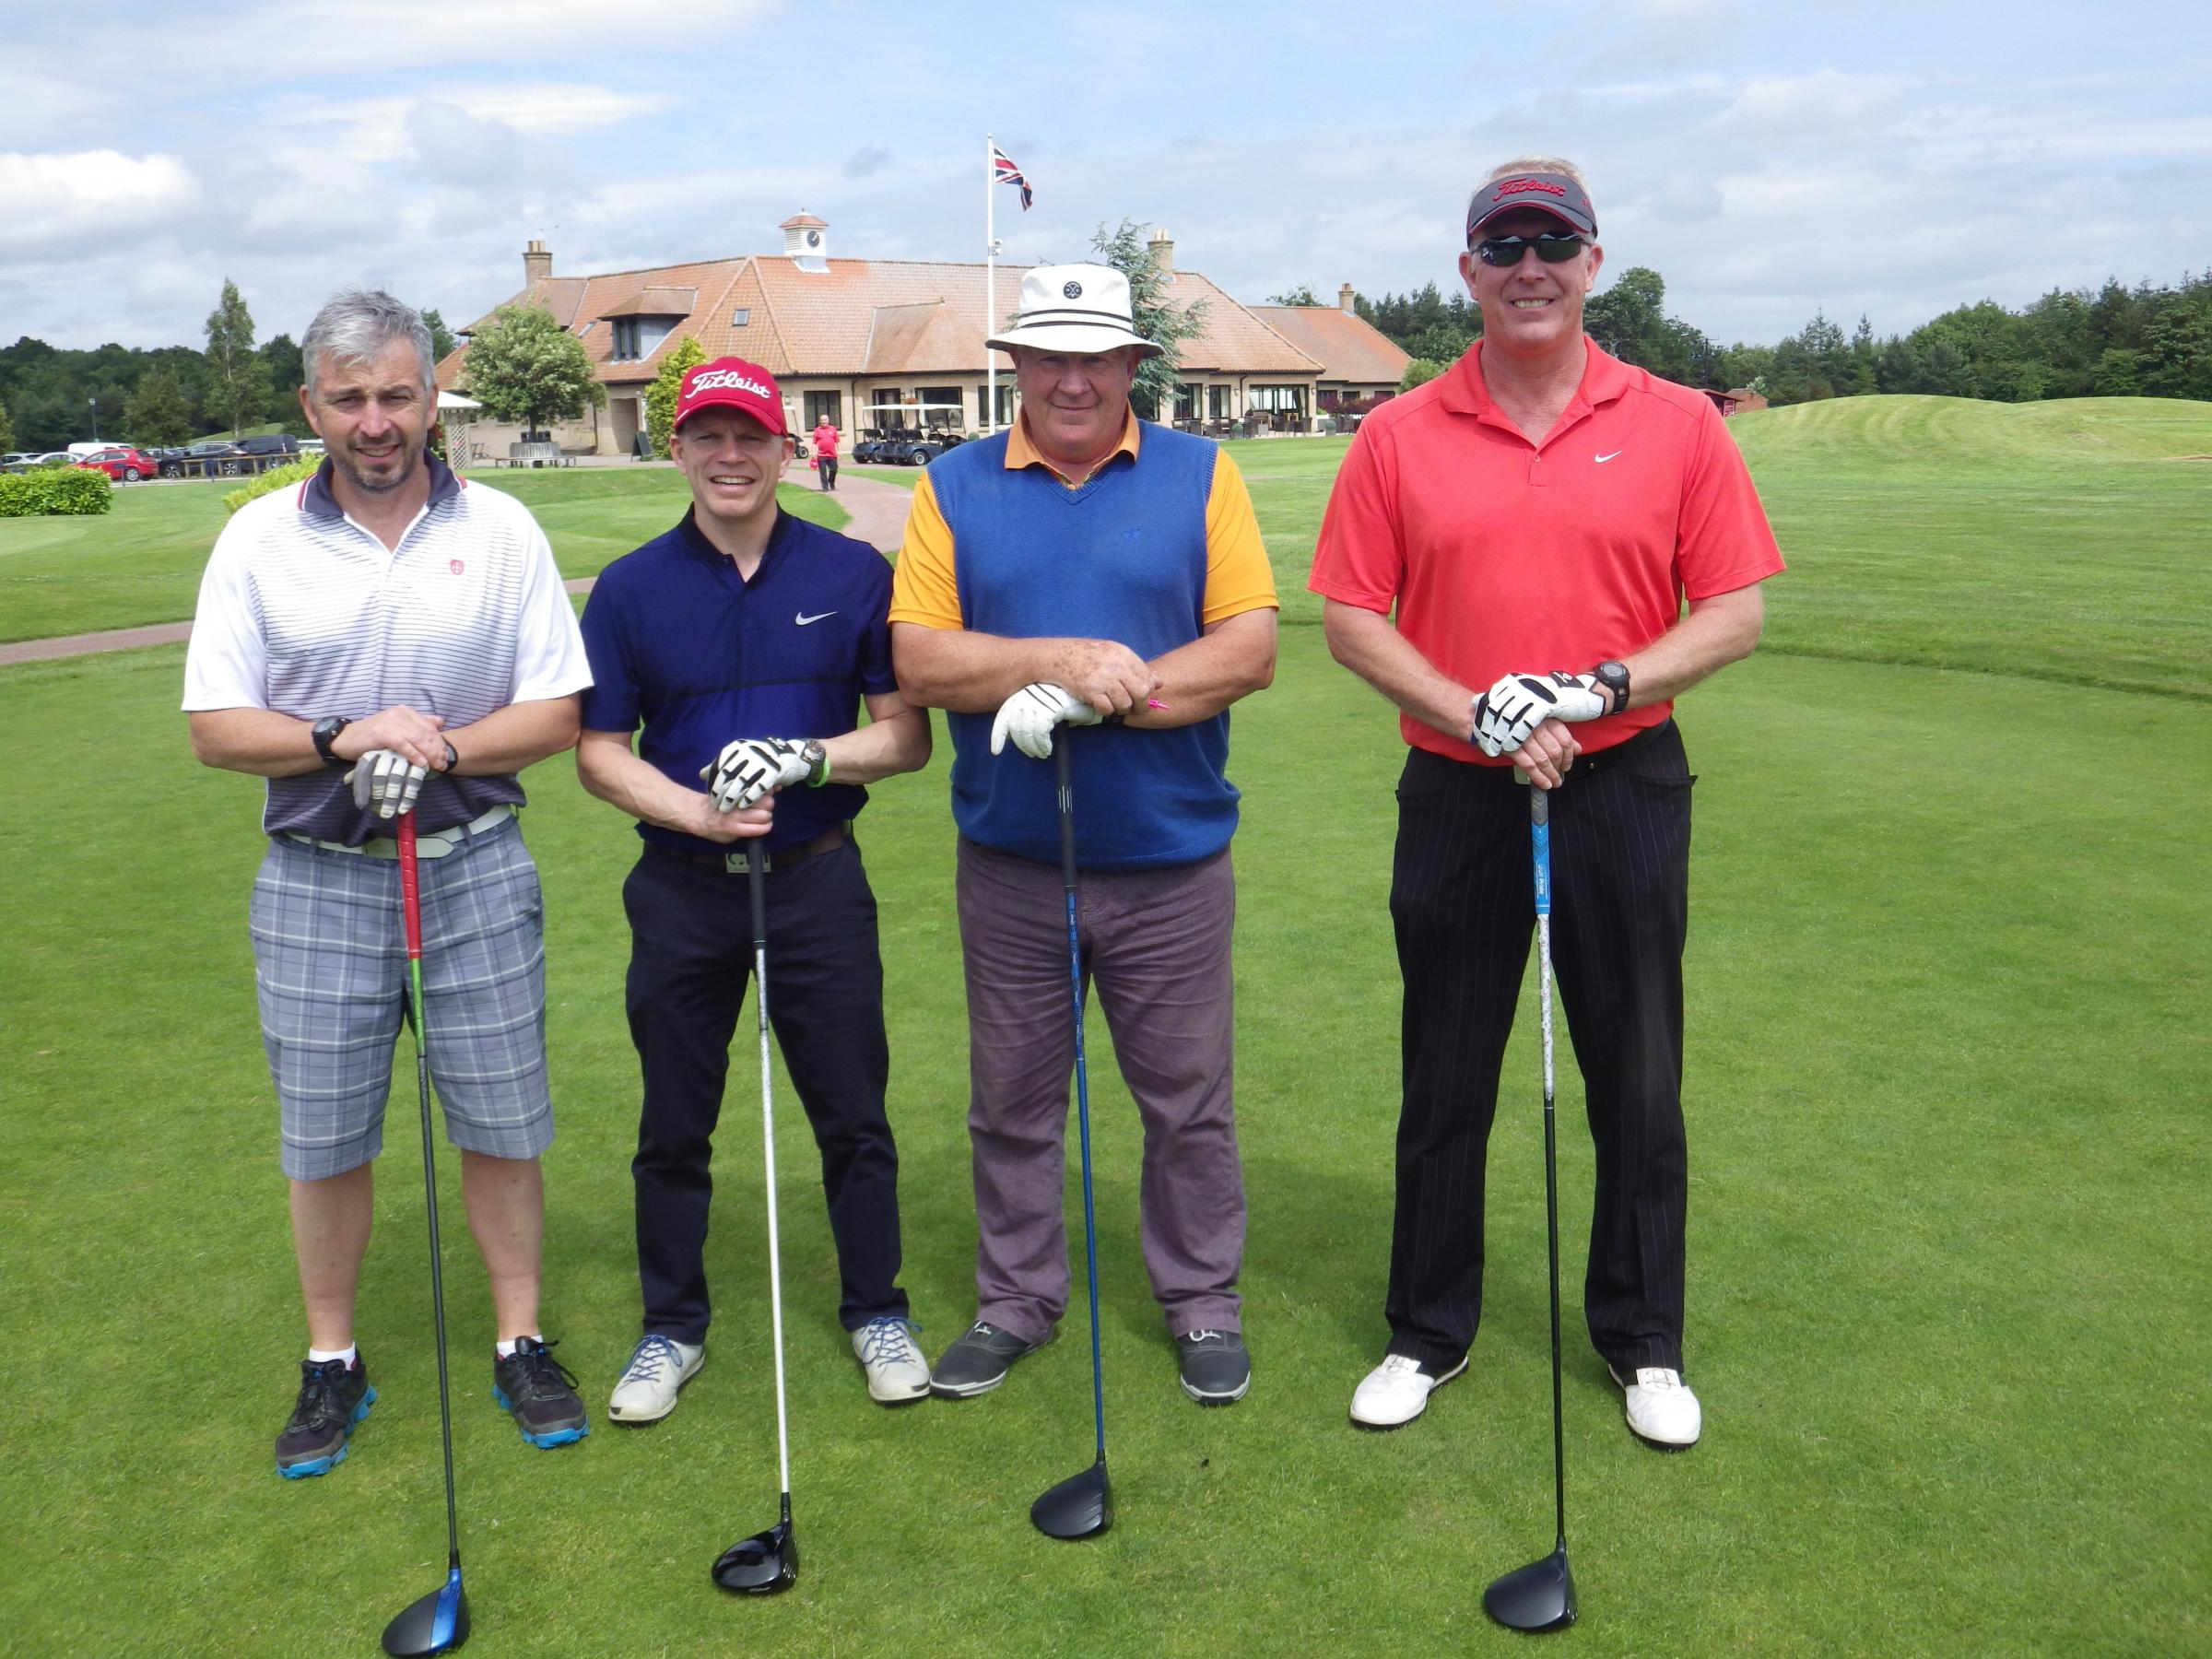 Teeing off for charity golf tournament